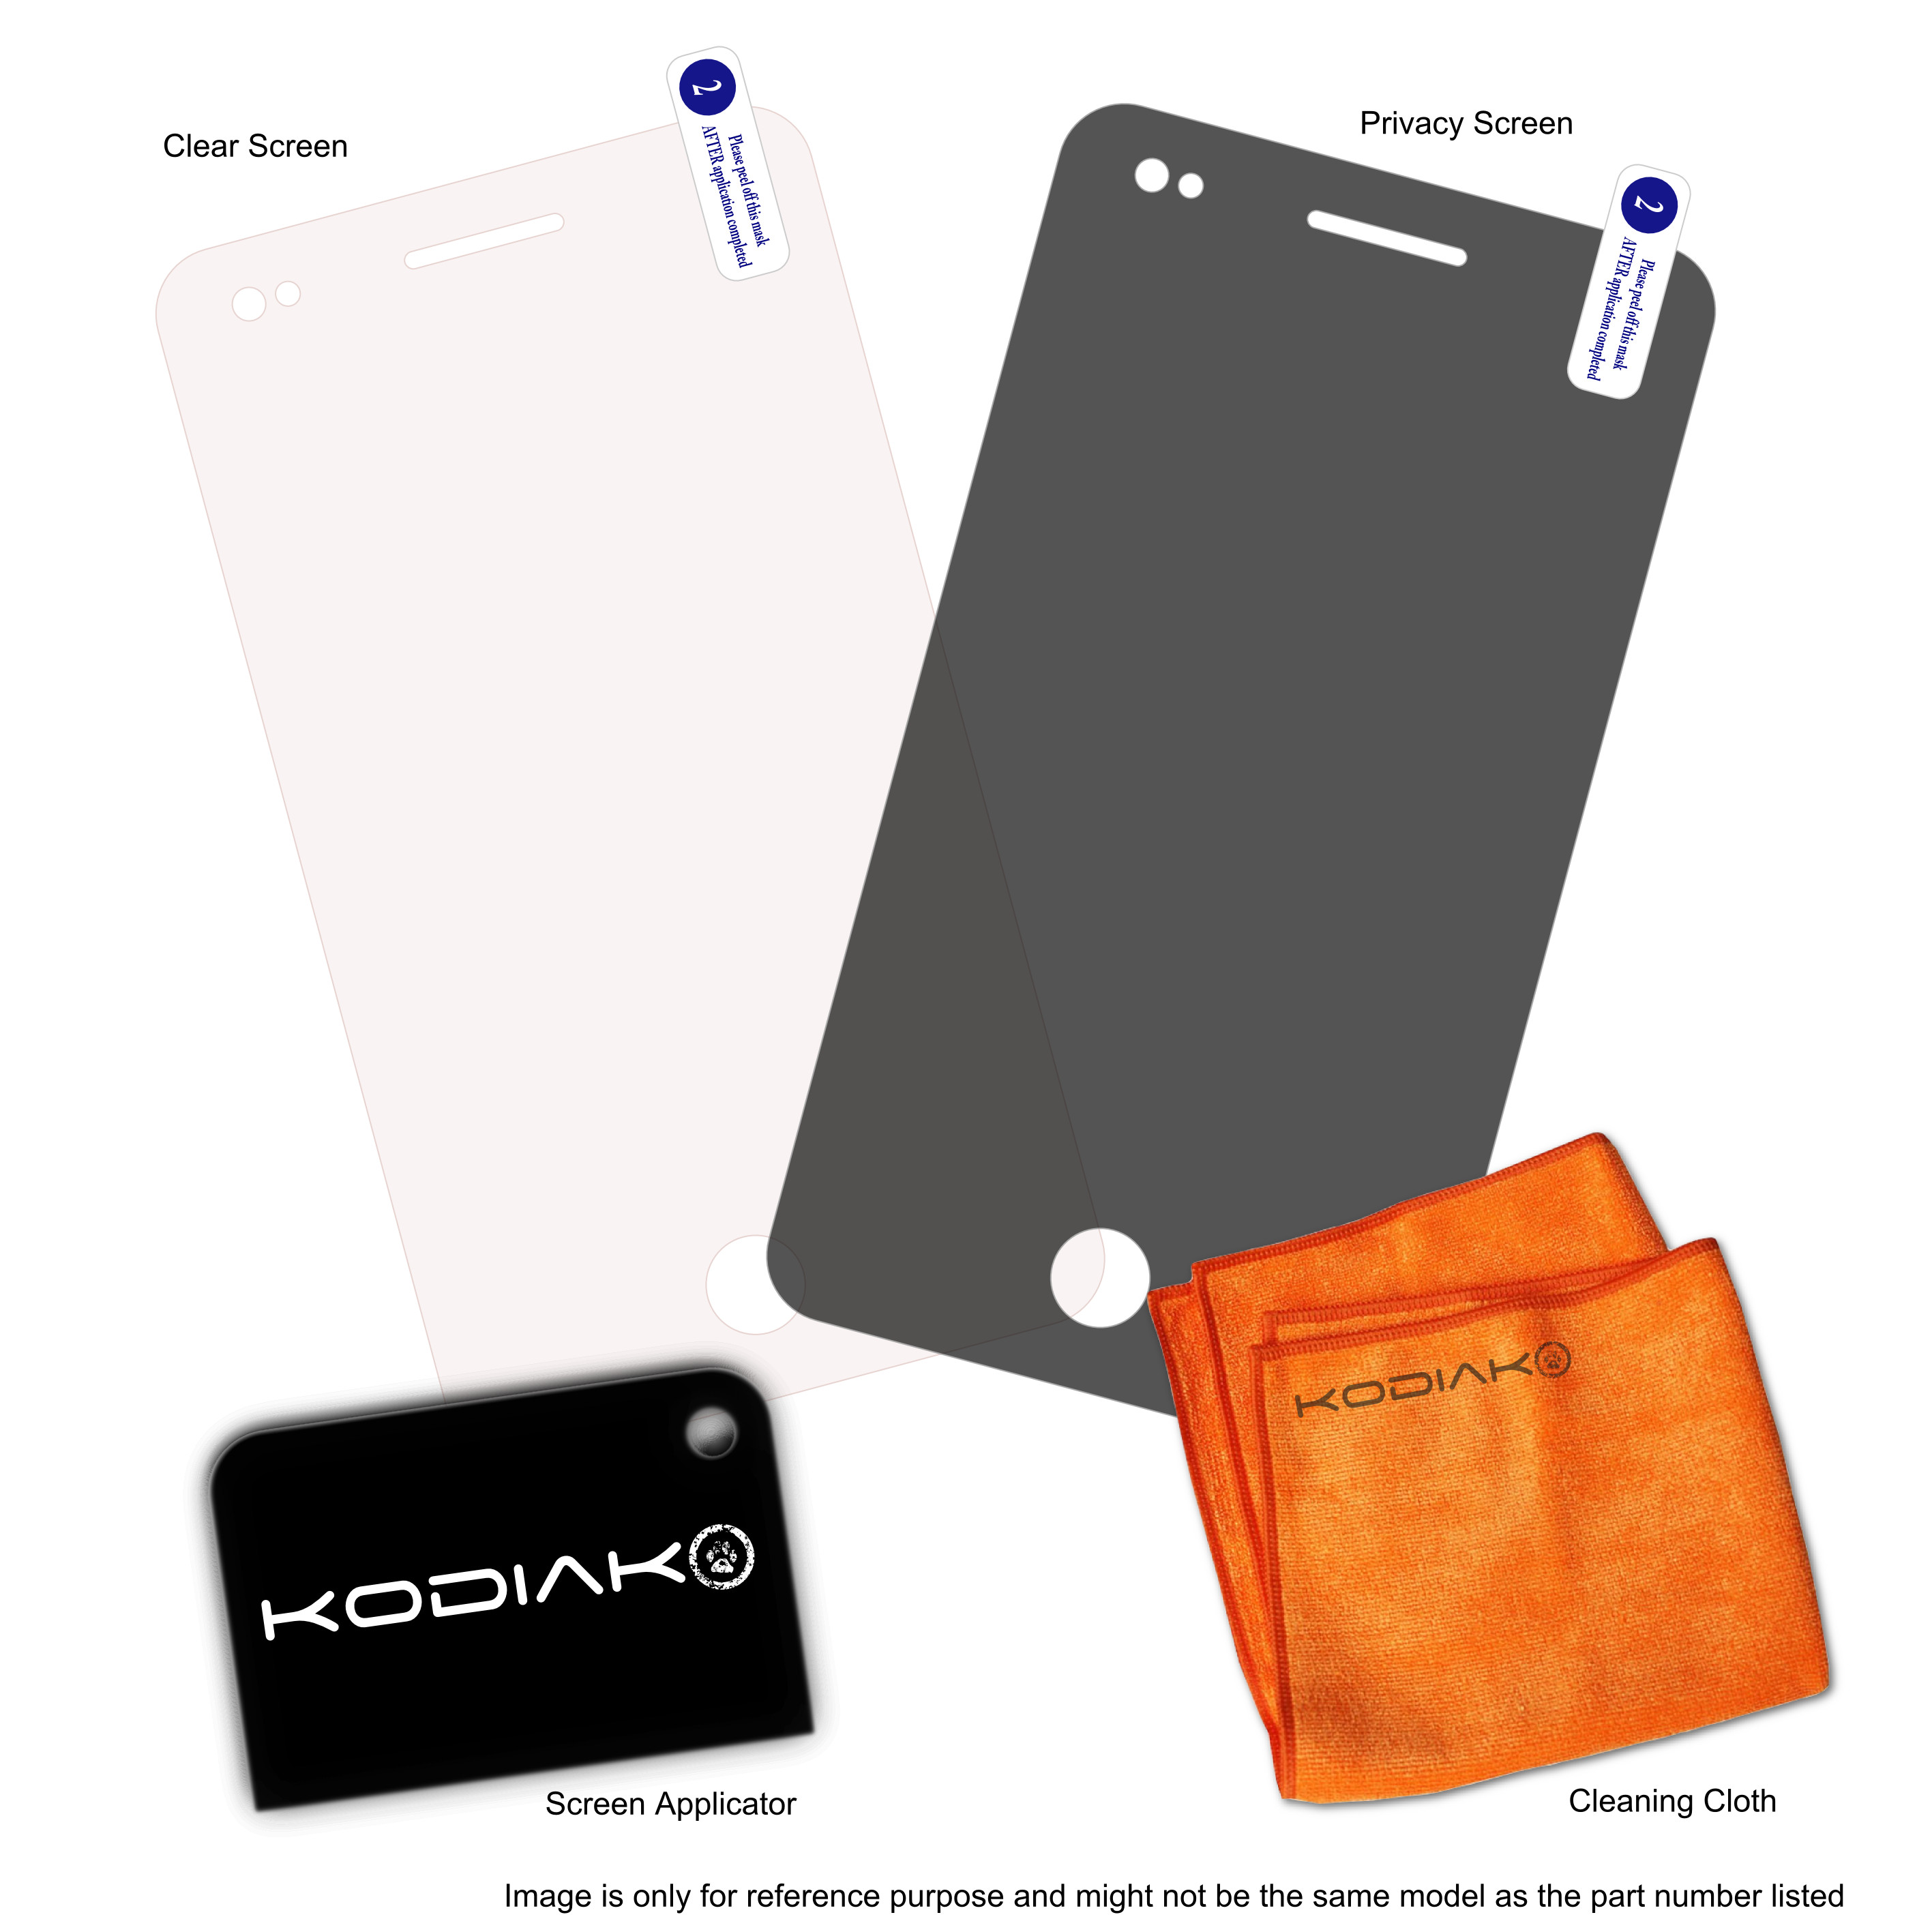 original-kodiak-screen-protector-sony-xperia-sp-iprotect-2-package-clear-privacy